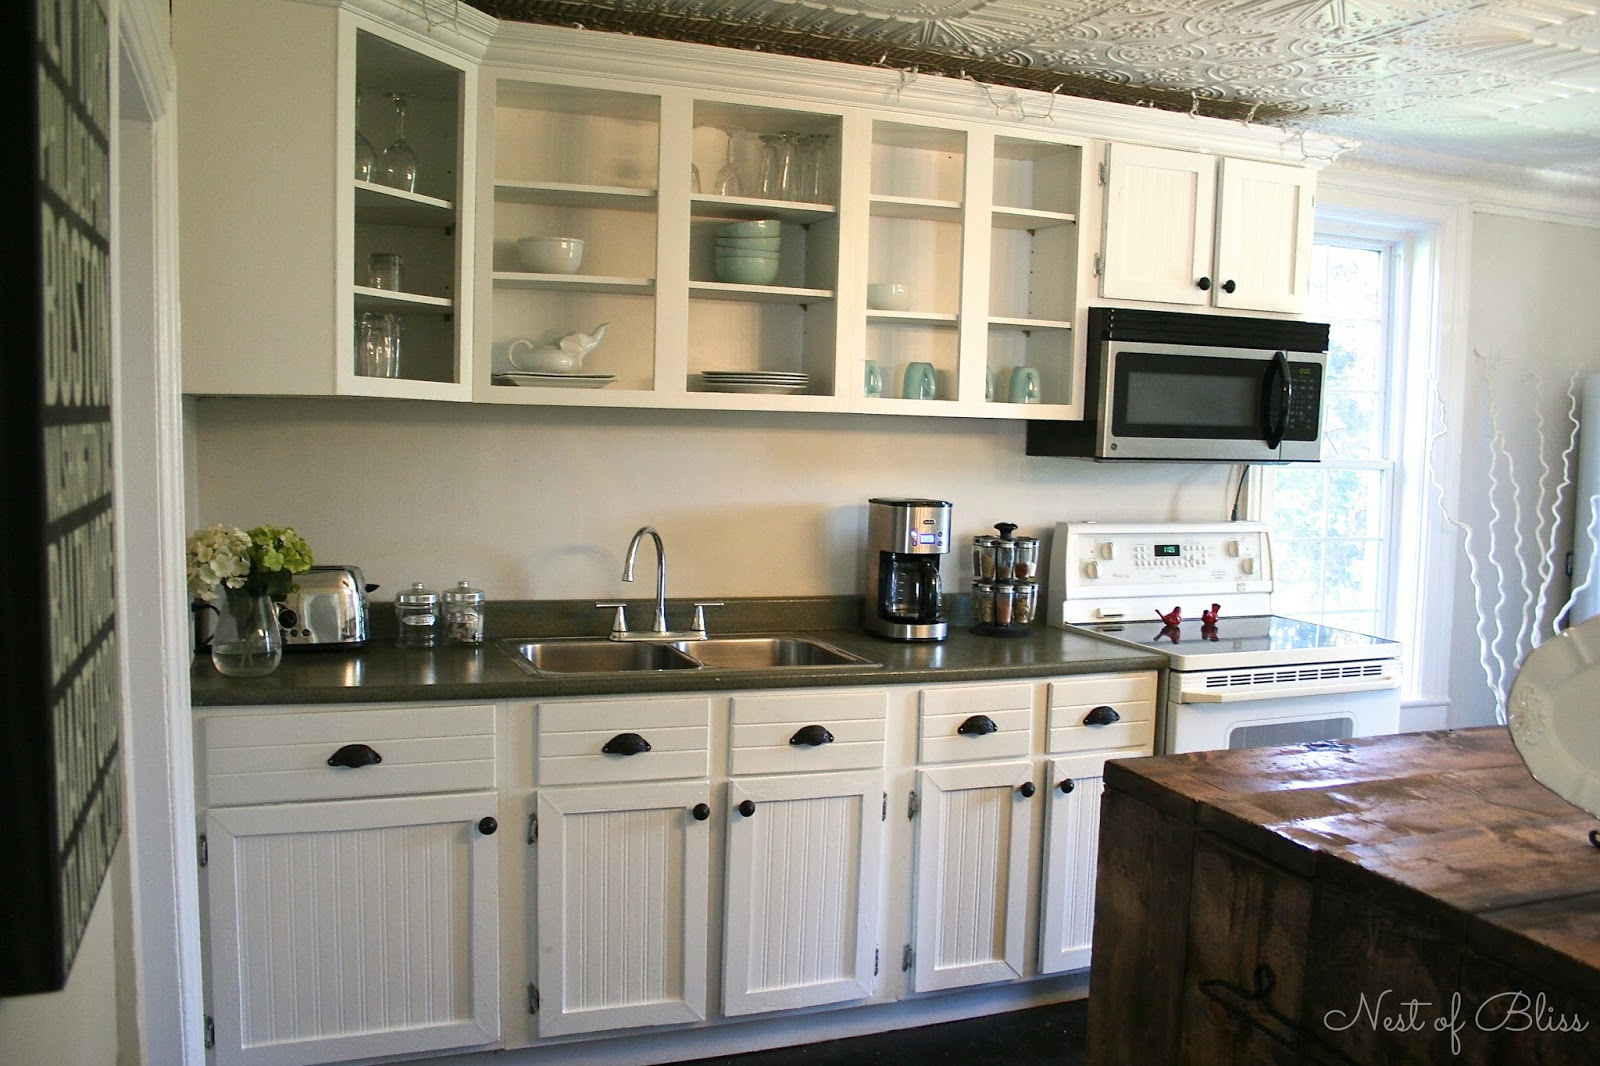 Kitchen Makeovers On A Budget Before And After kitchen renovation makeover progress! before and after - nest of bliss